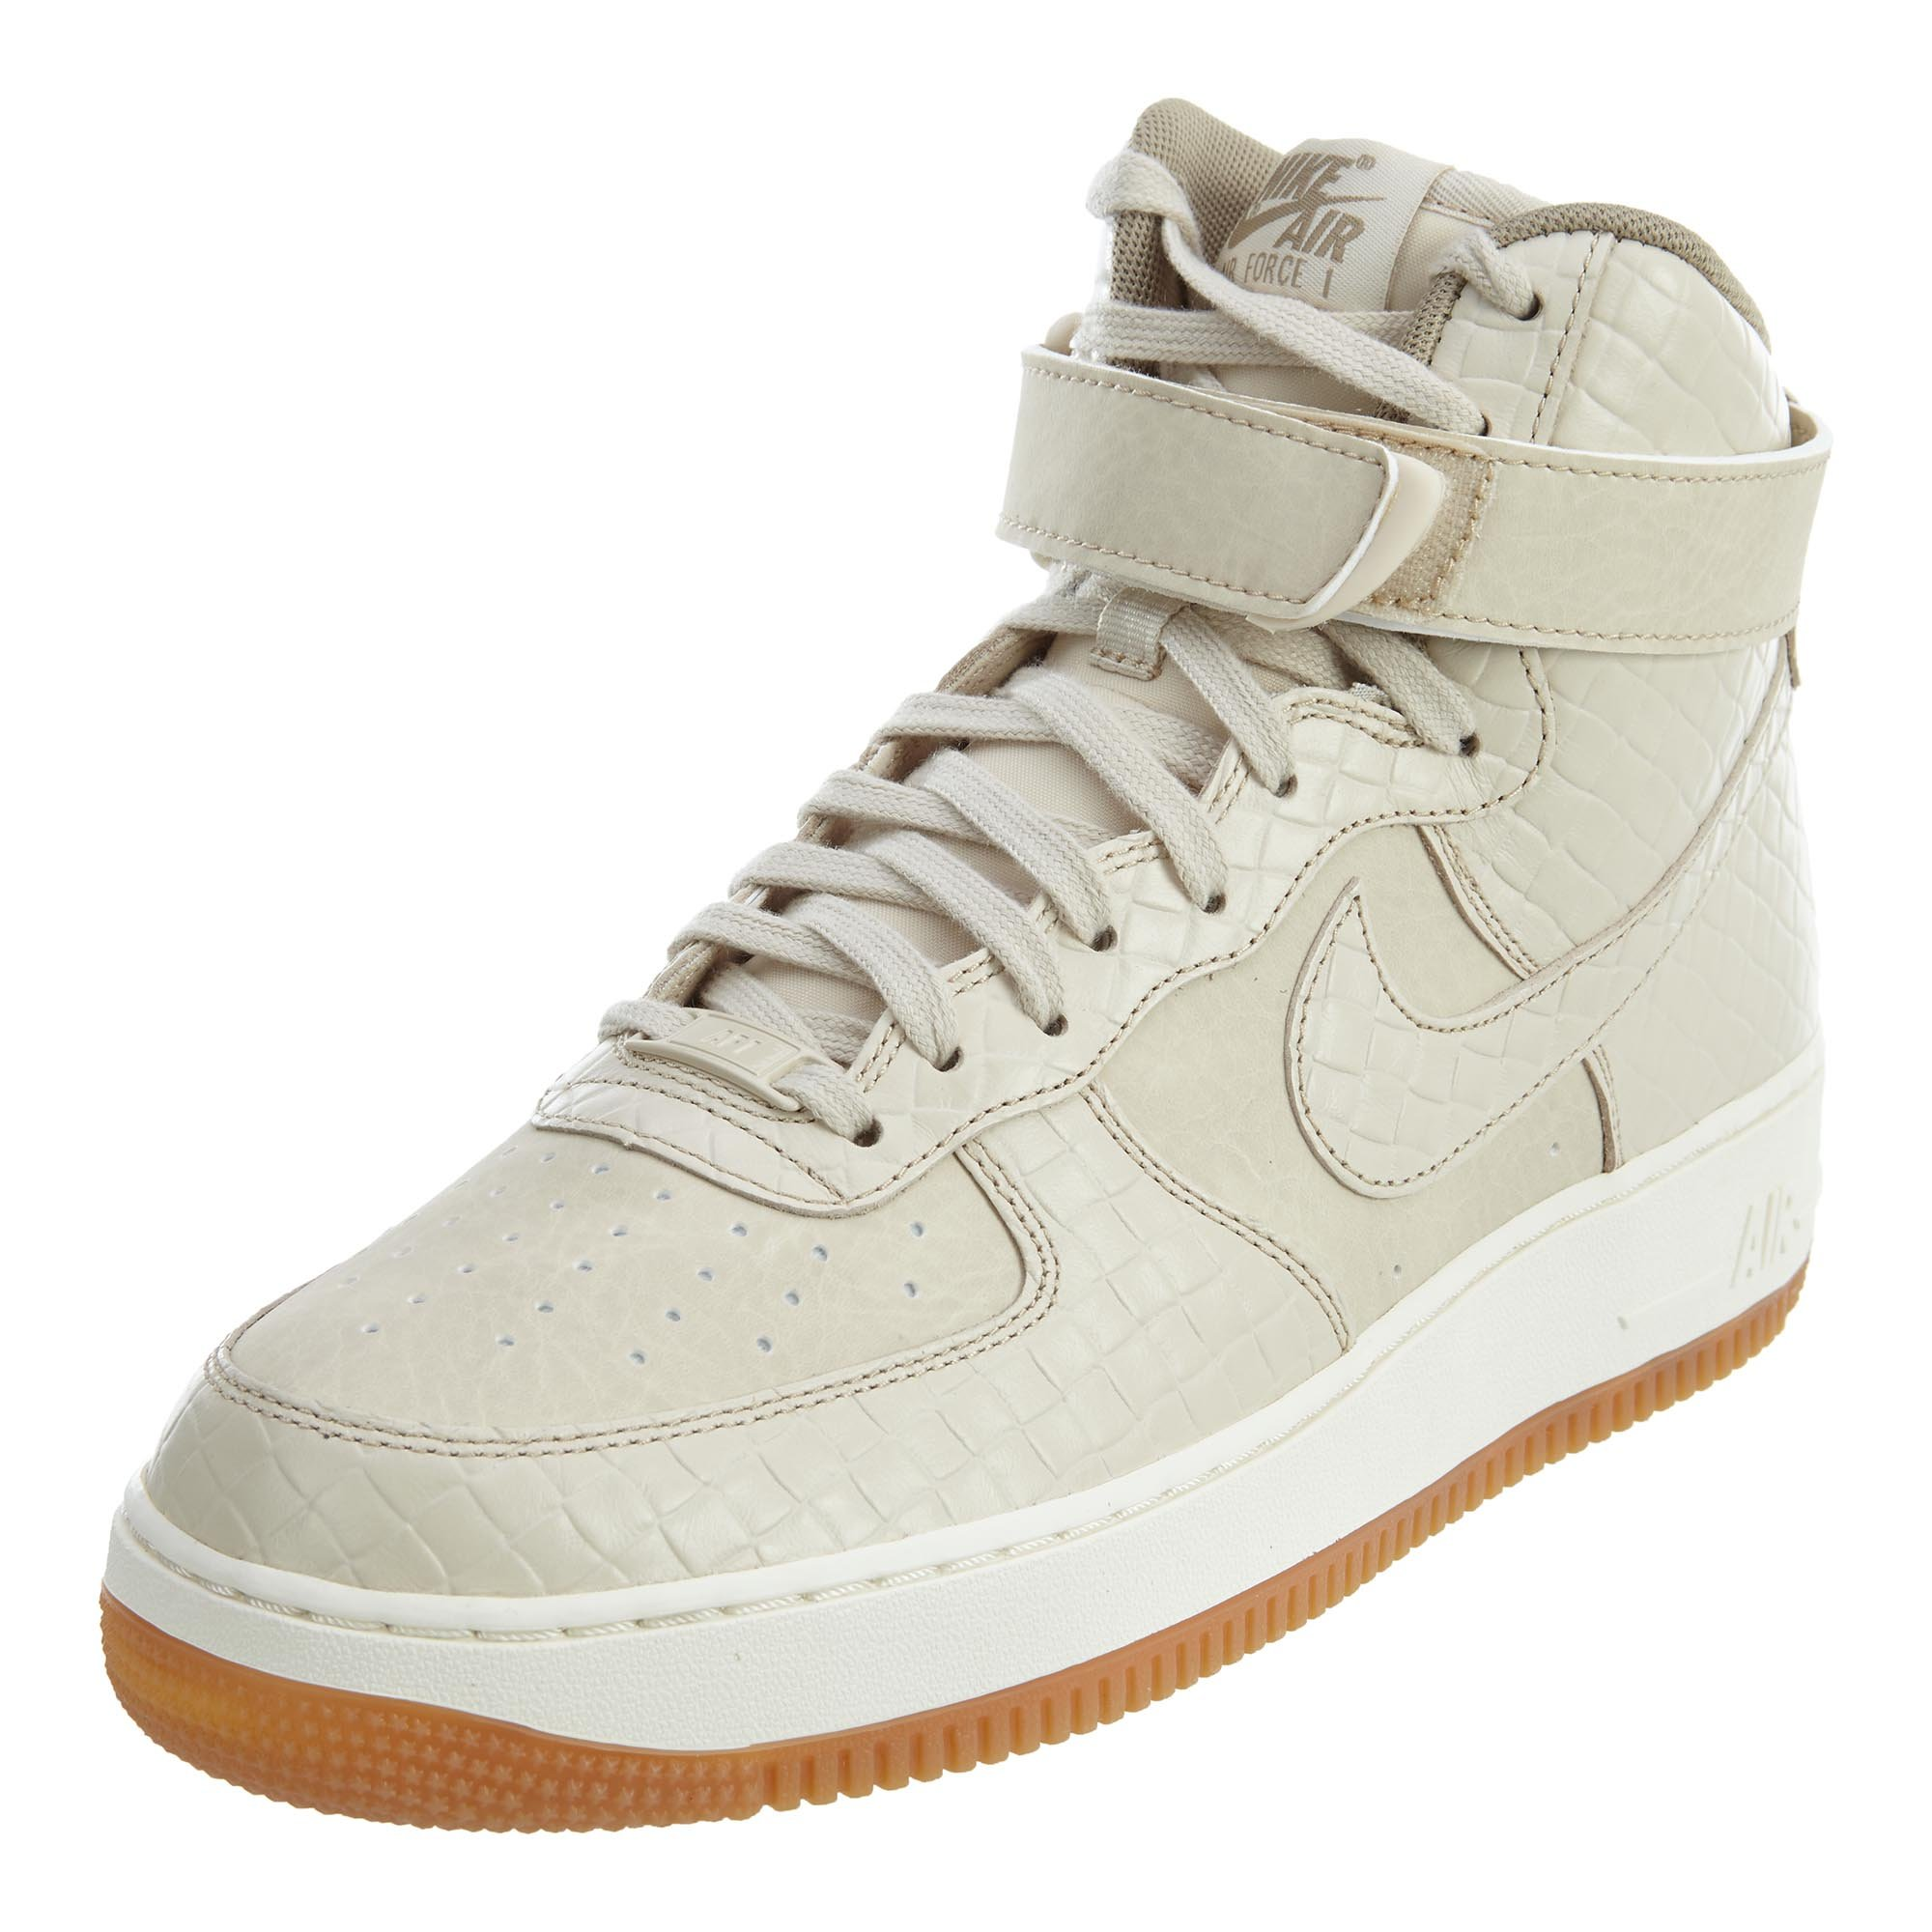 NIKE Air Force 1 Hi PRM Womens Style: 654440-112 Size: 9.5